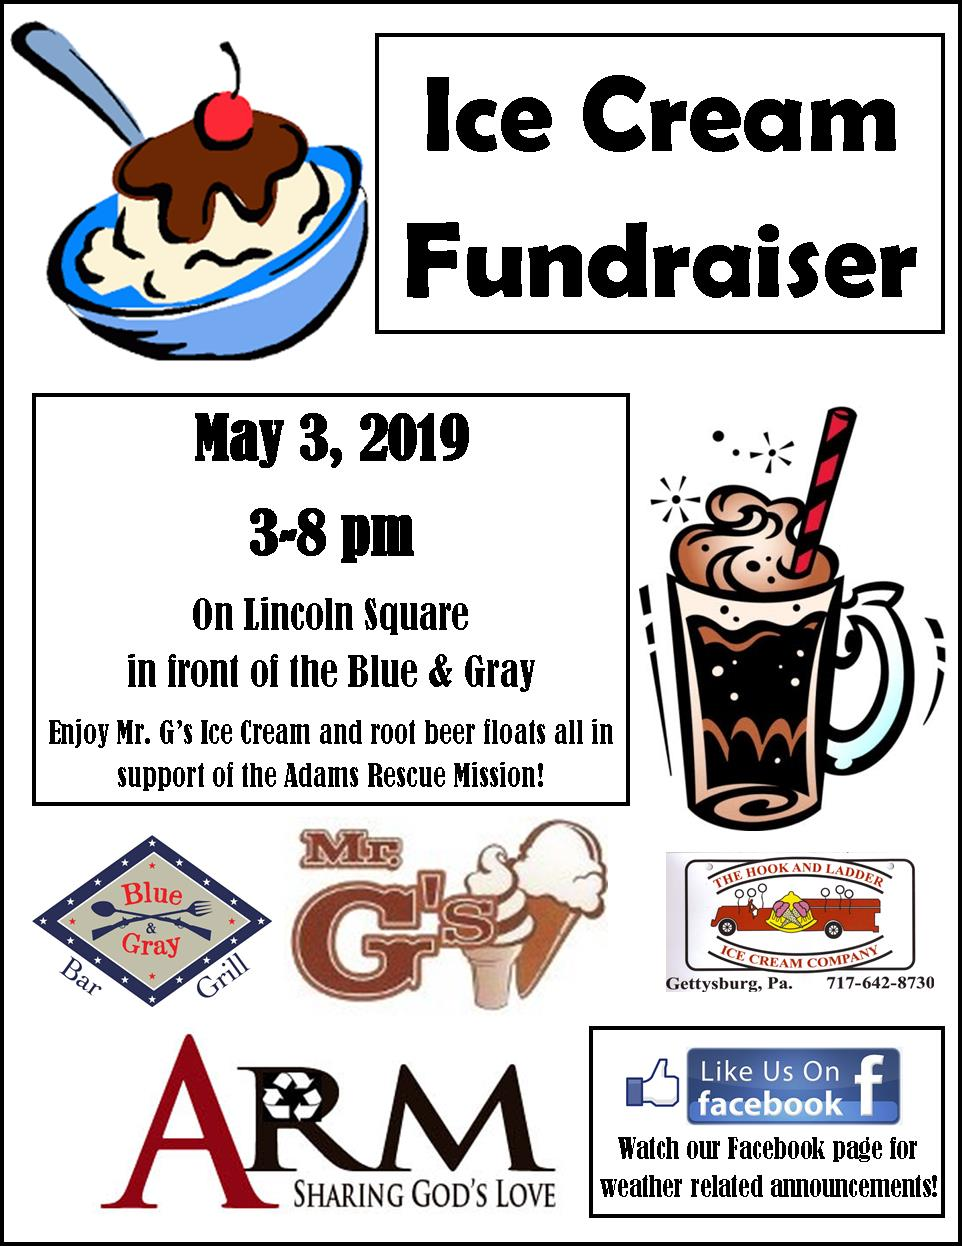 Ice Cream Fundraiser May 3 2019.jpg